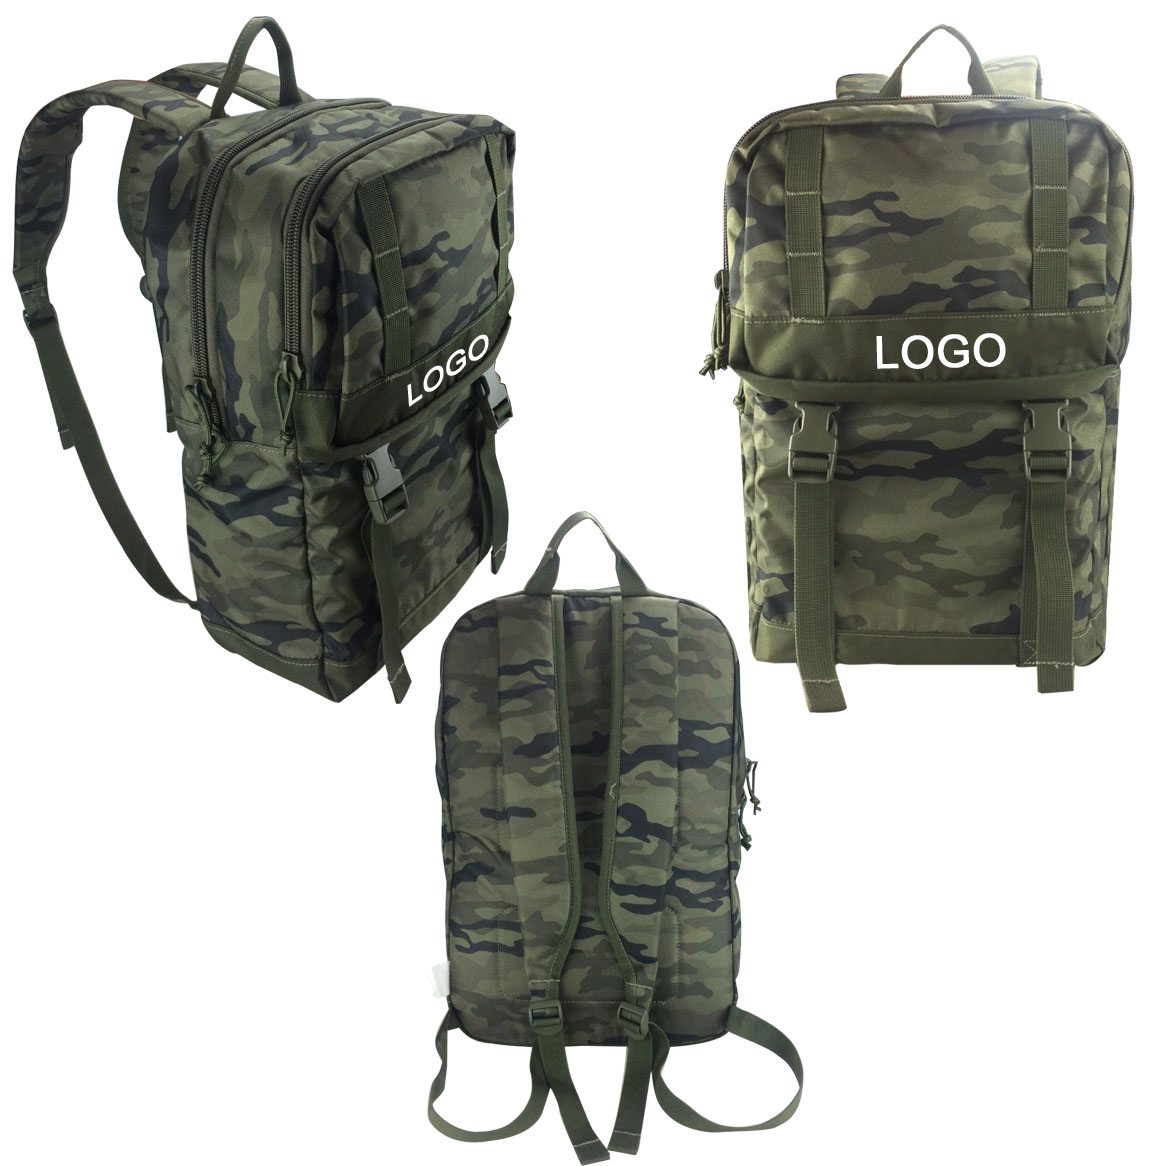 12.5W x 17H Inch Classic Camo Backpack